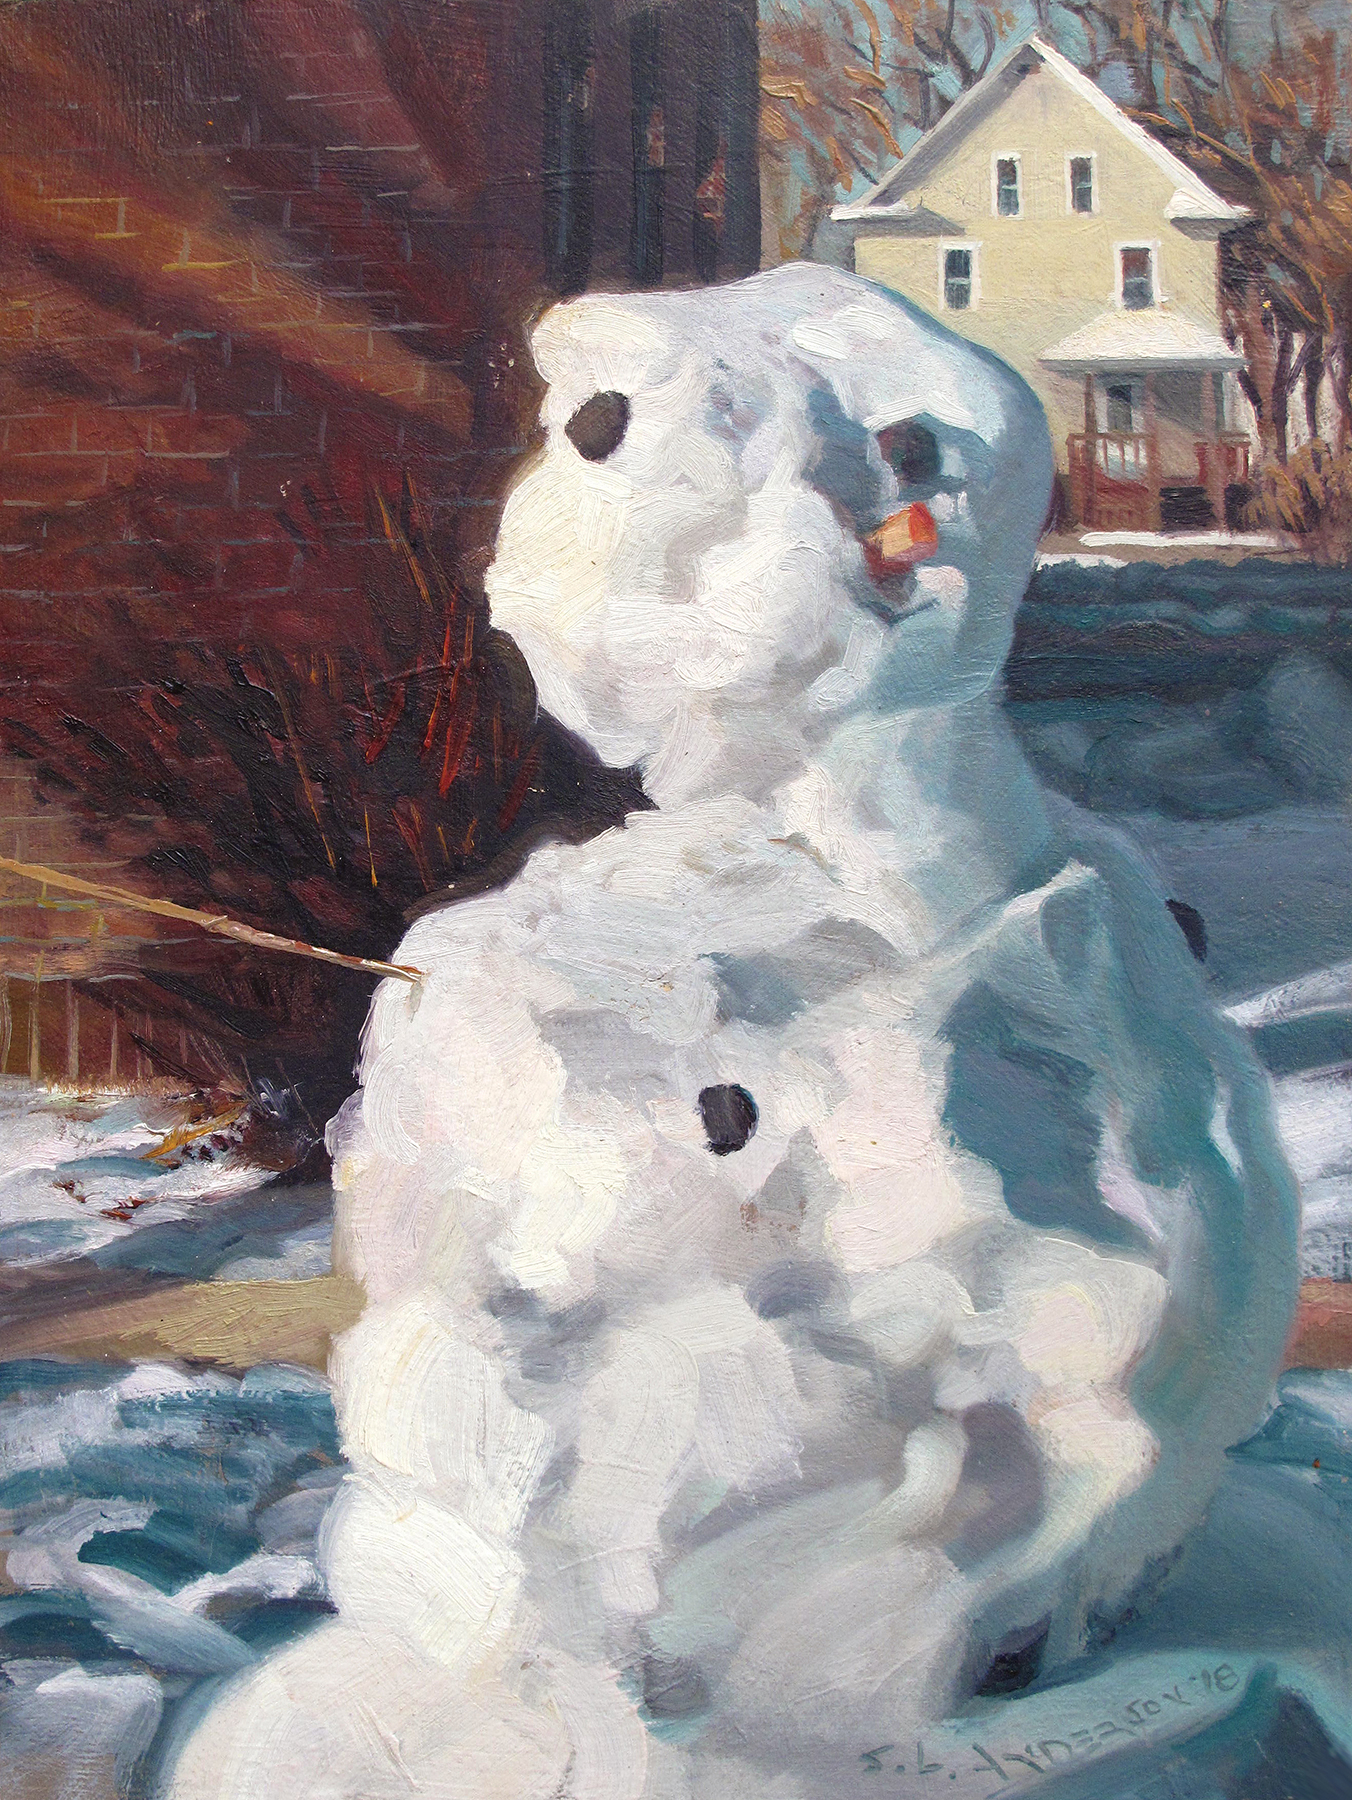 Snowperson 41  16 x 12 oil on panel  I was going to write that this one just read the Mueller Report, but I won't.